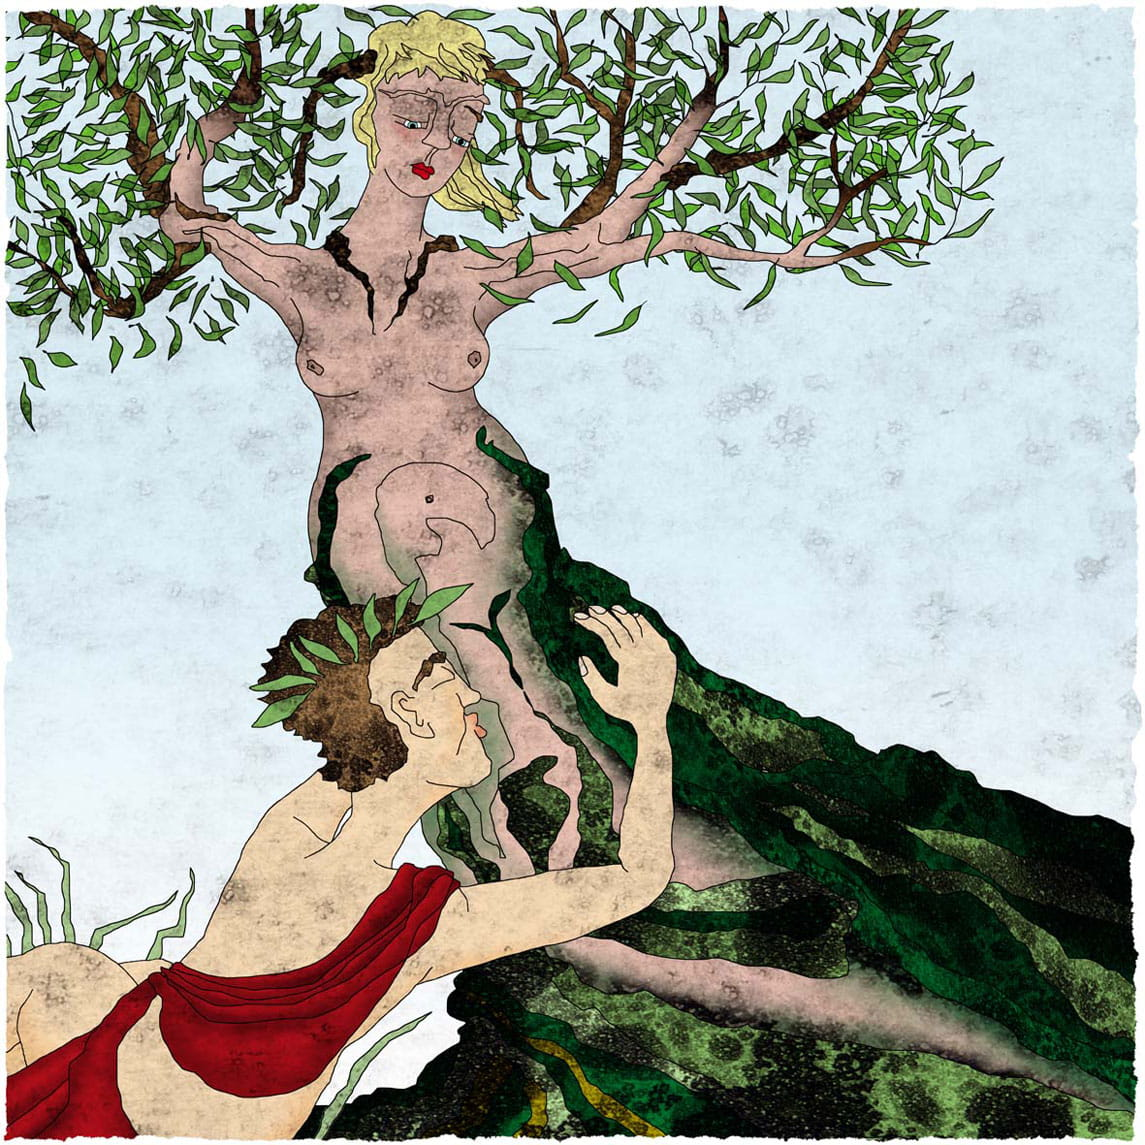 Griekse mythologie, Greek mythology, Apollo en Daphne, Apollo and Daphne